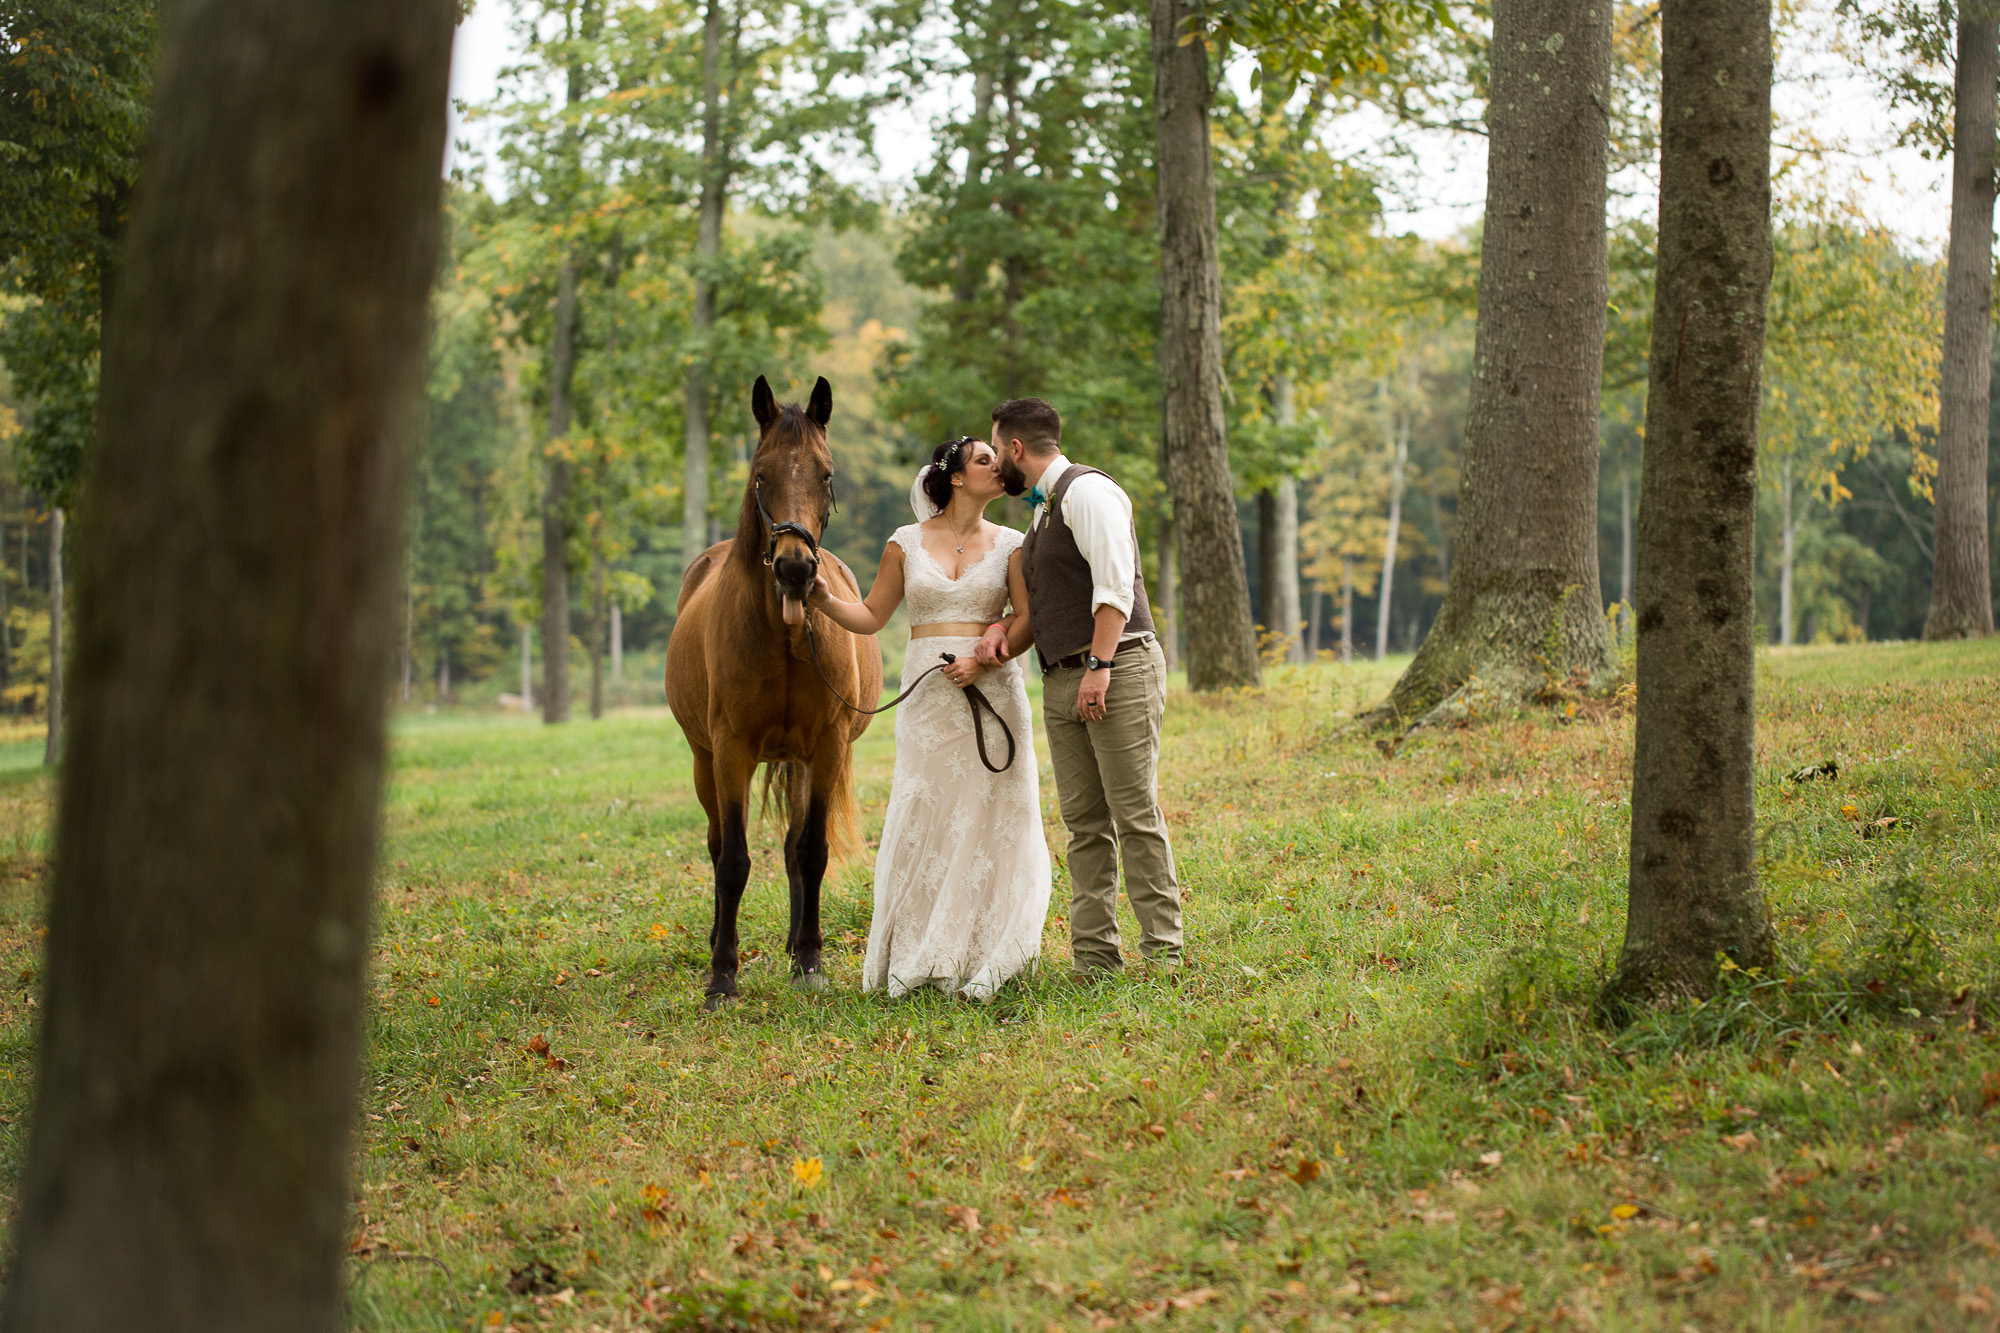 bride and groom kissing in the forest at Candlelight Farms inn, with the horse